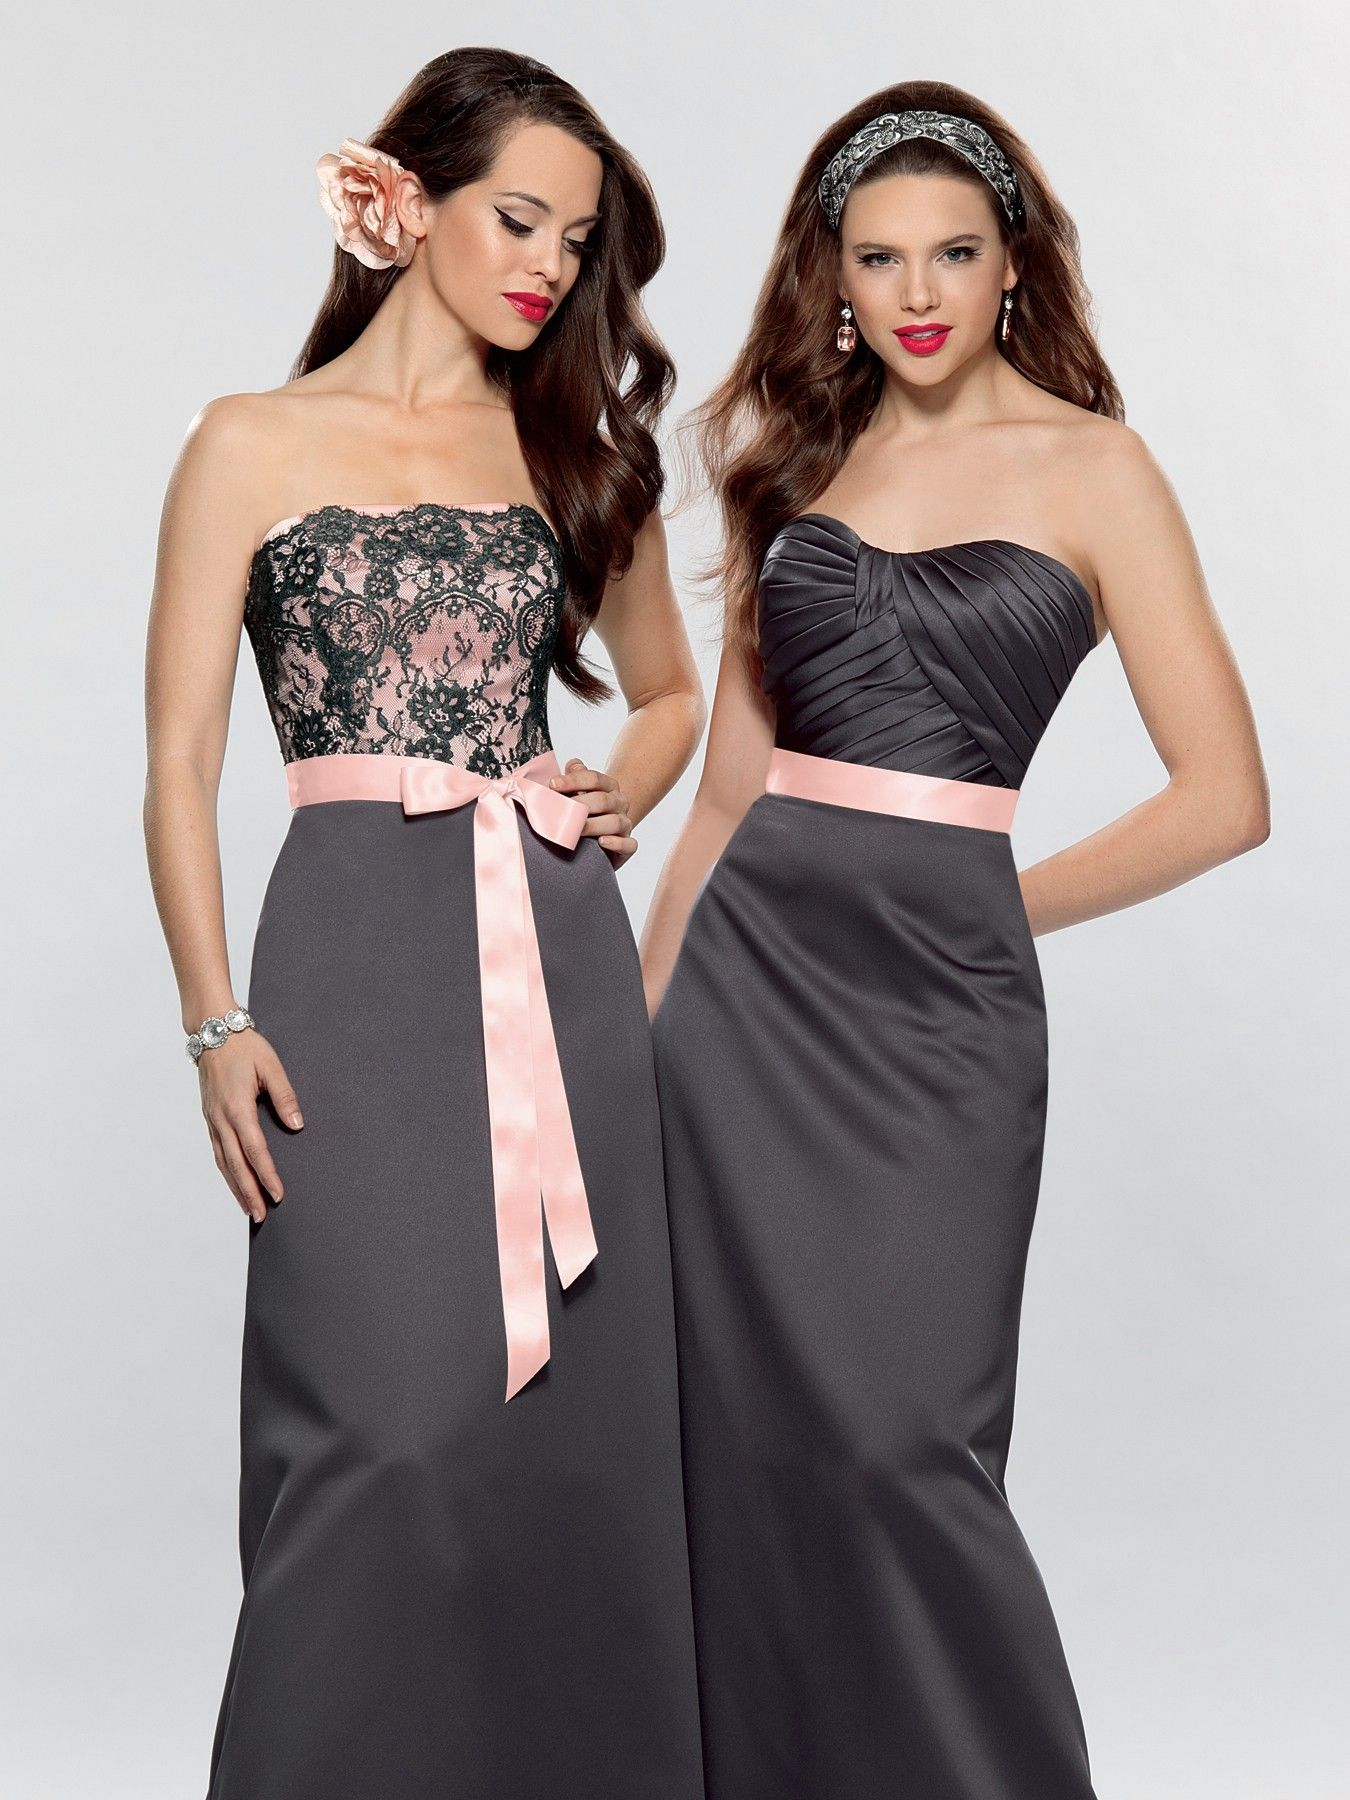 Jordan bridesmaid dresses style 643 643 15120 wedding jordan bridesmaid dresses style 643 643 15120 wedding dresses bridesmaid ombrellifo Image collections